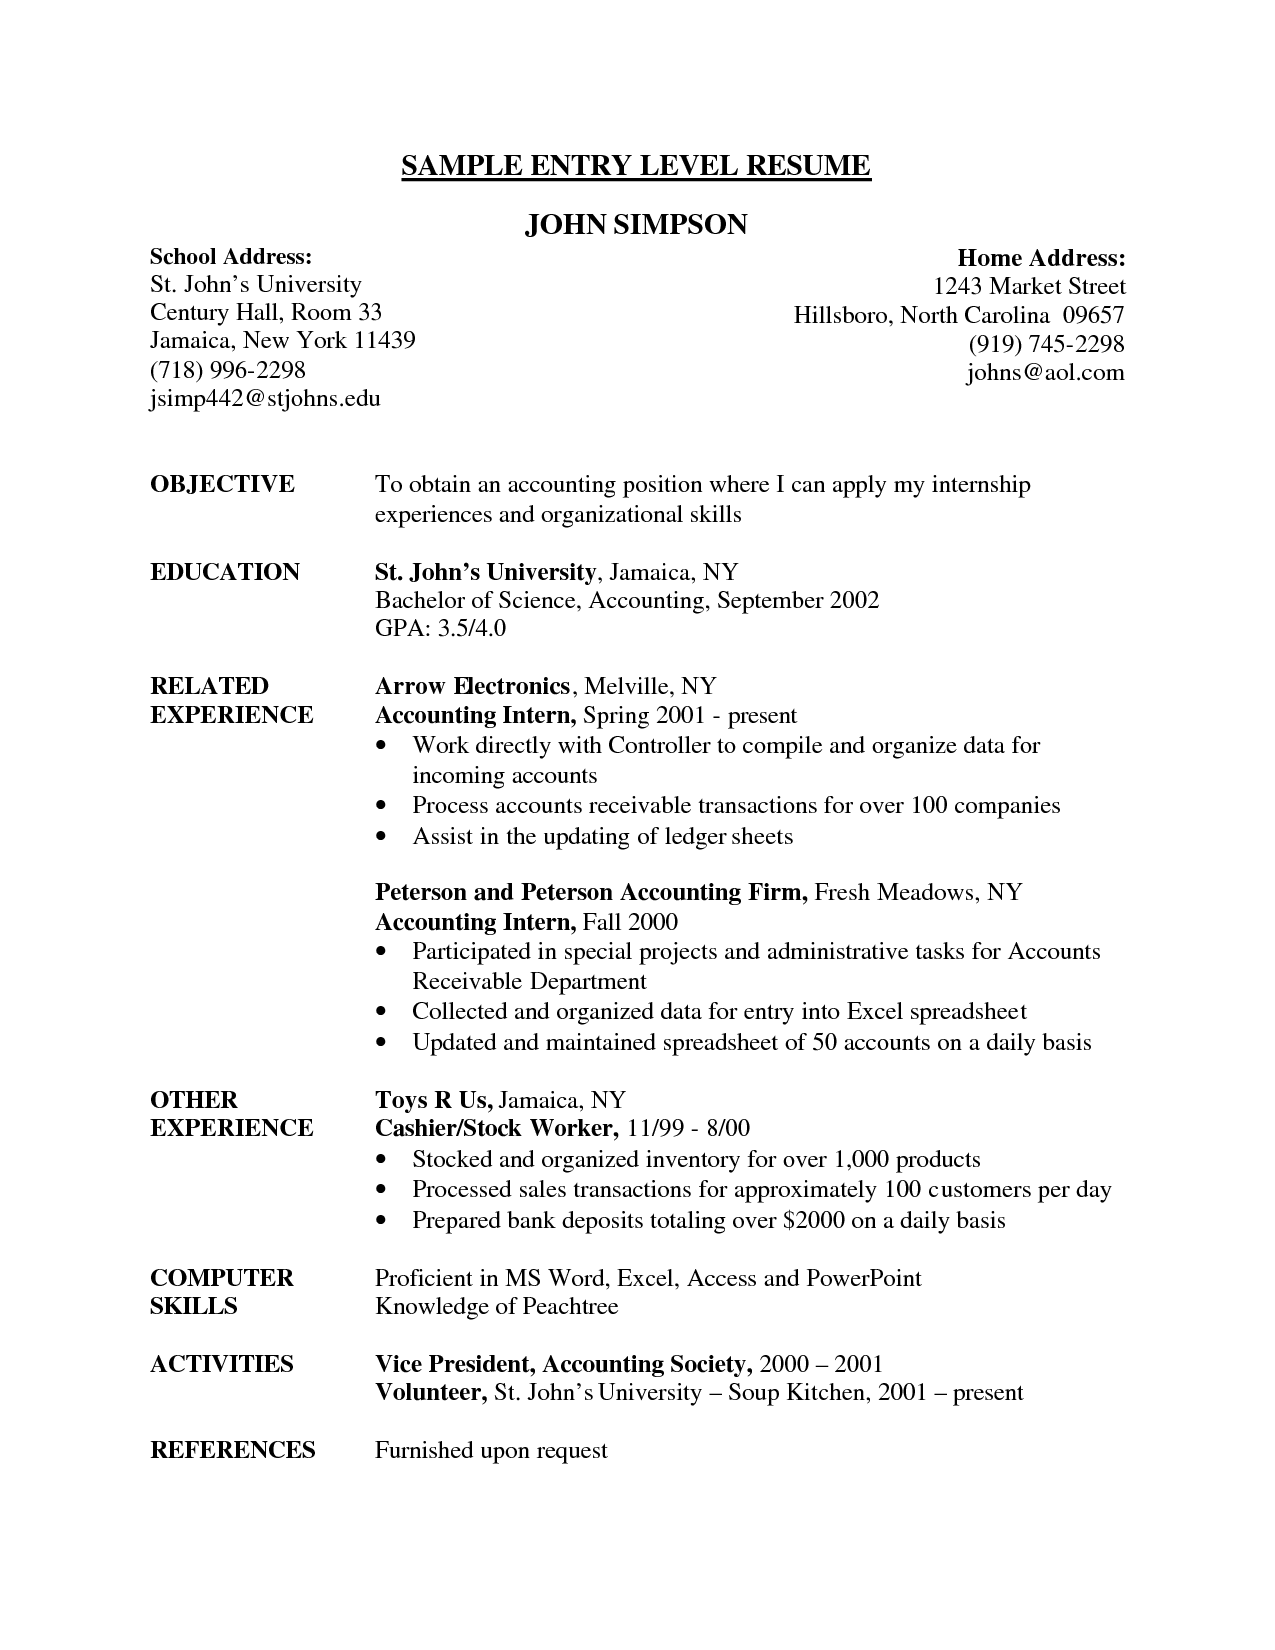 Example Of Resume Profile Entry Level httpwwwresumecareerinfo